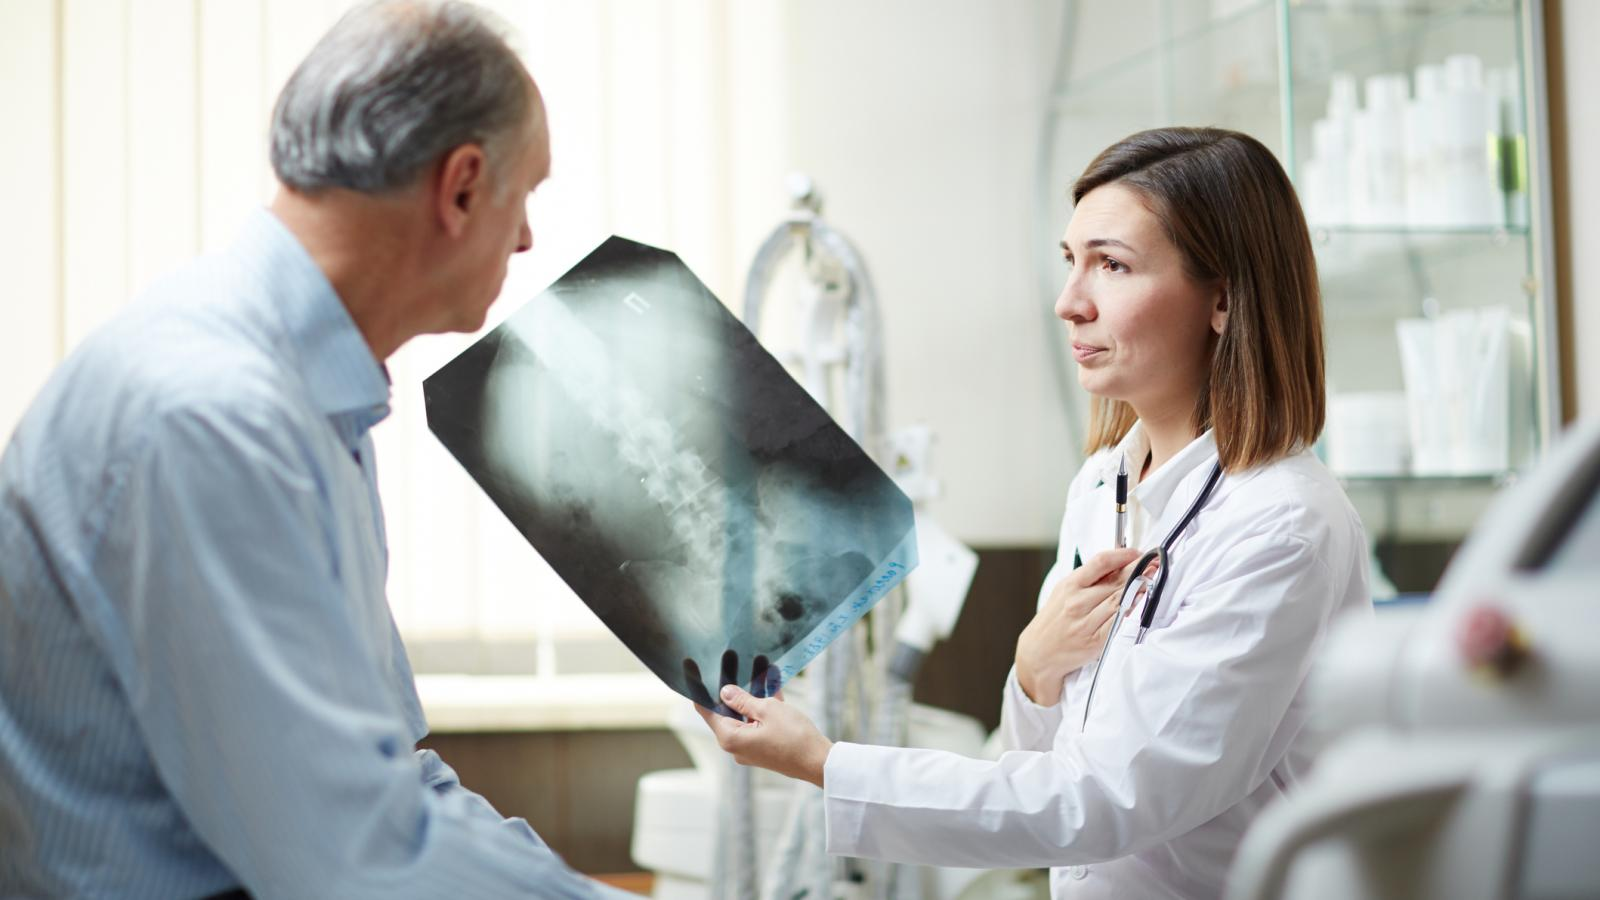 Doctor showing man an x-ray